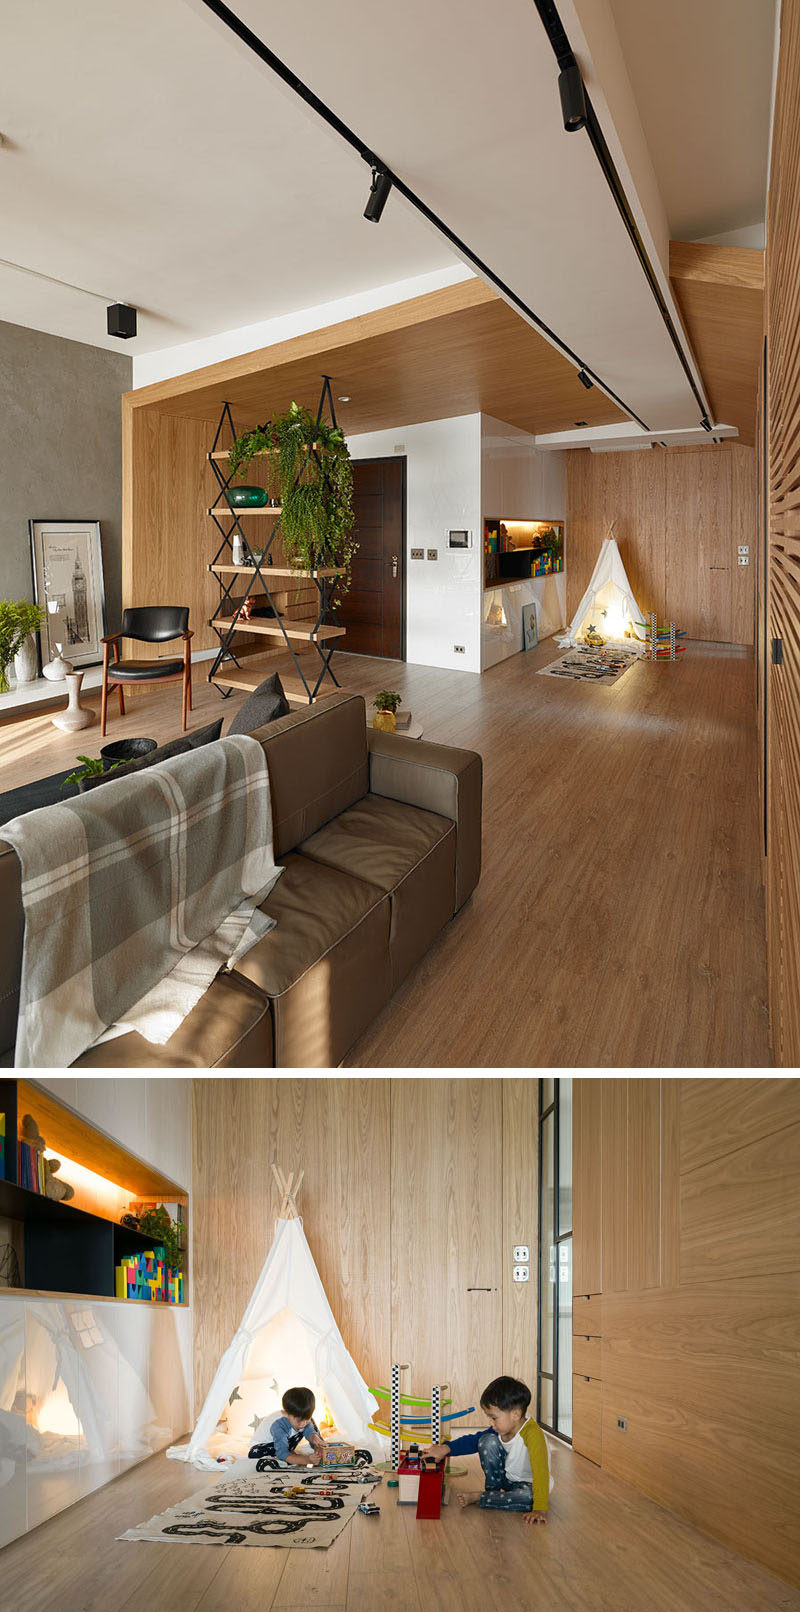 This apartment for a family has a play zone for the children including built-in storage unit and open shelving.